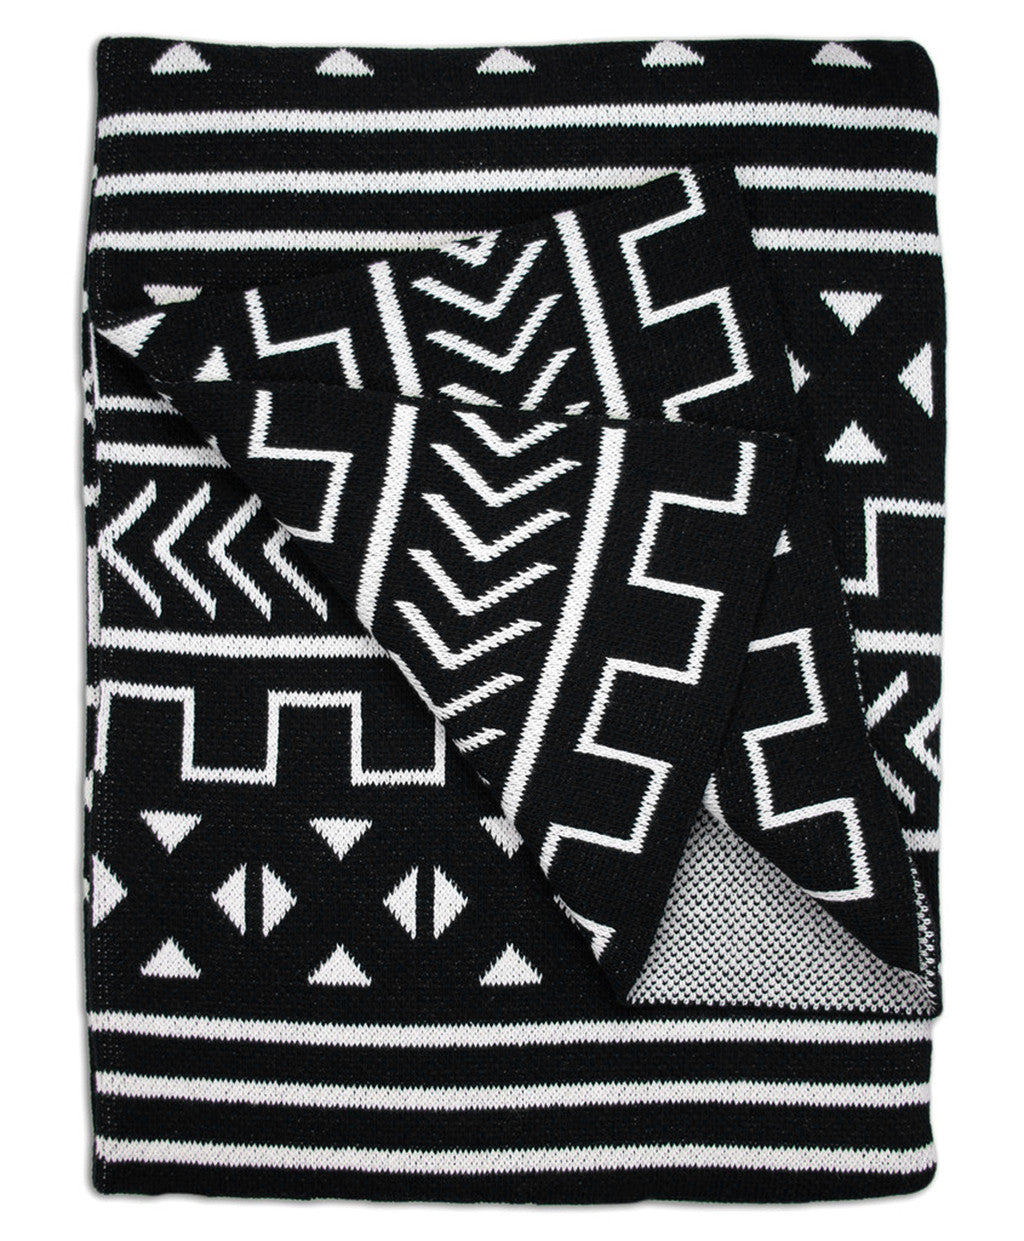 Savannah Hayes Mali Full-size Throw - Savannah Hayes